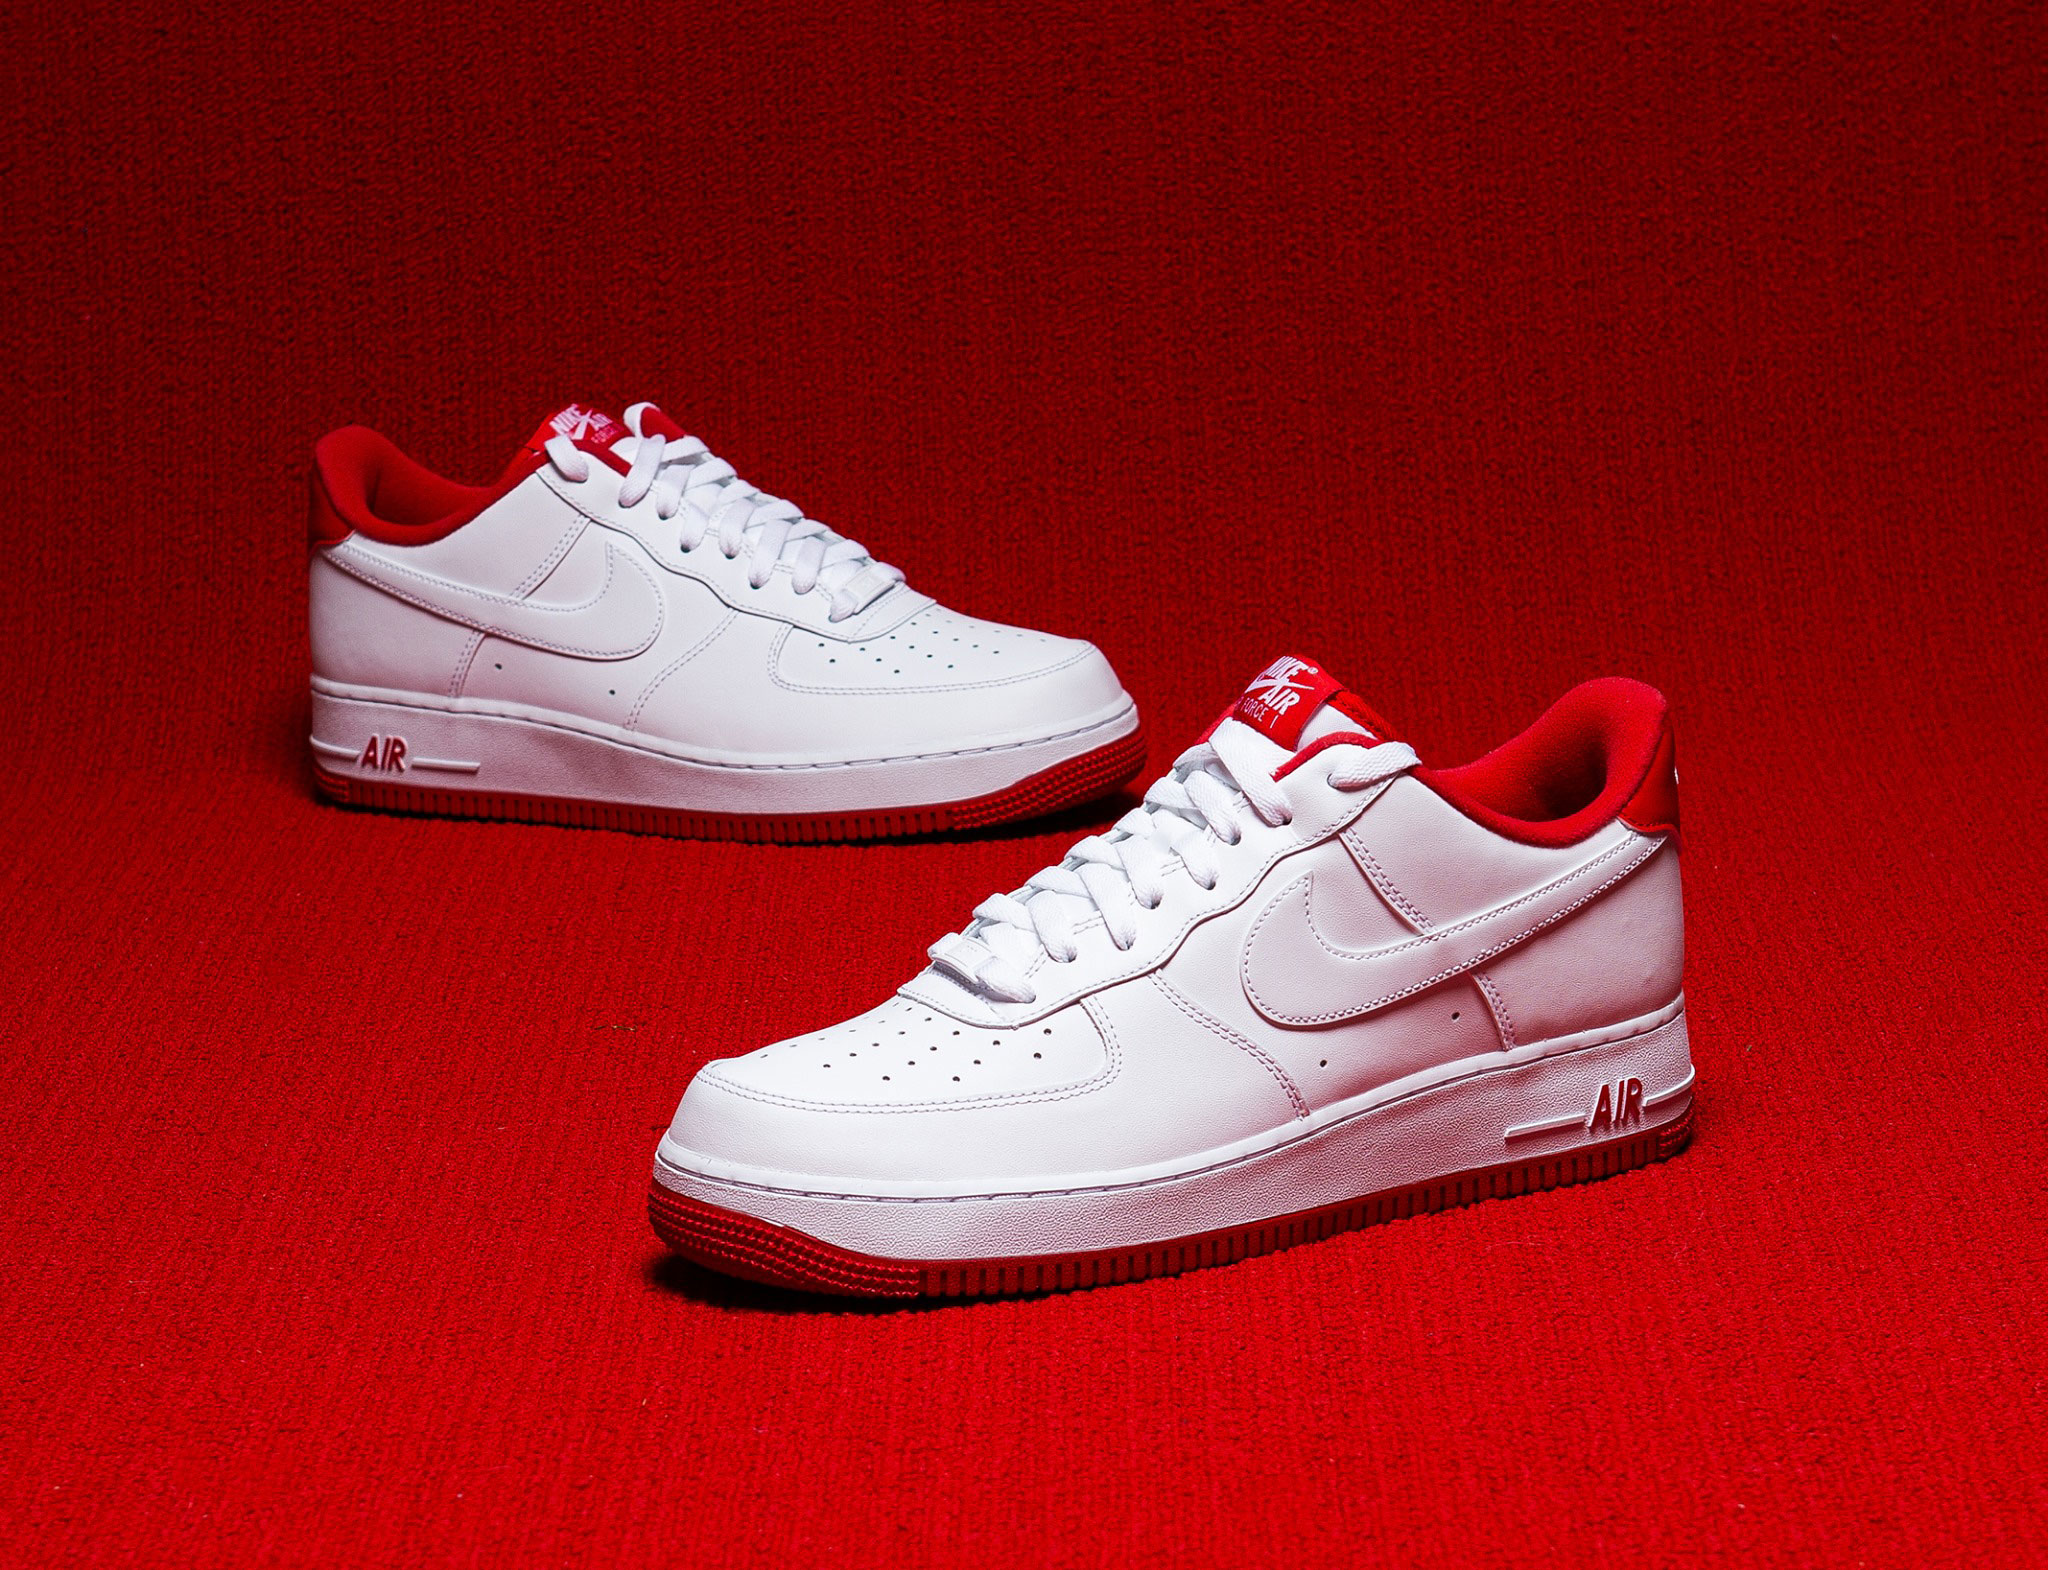 nike-air-force-1-white-red